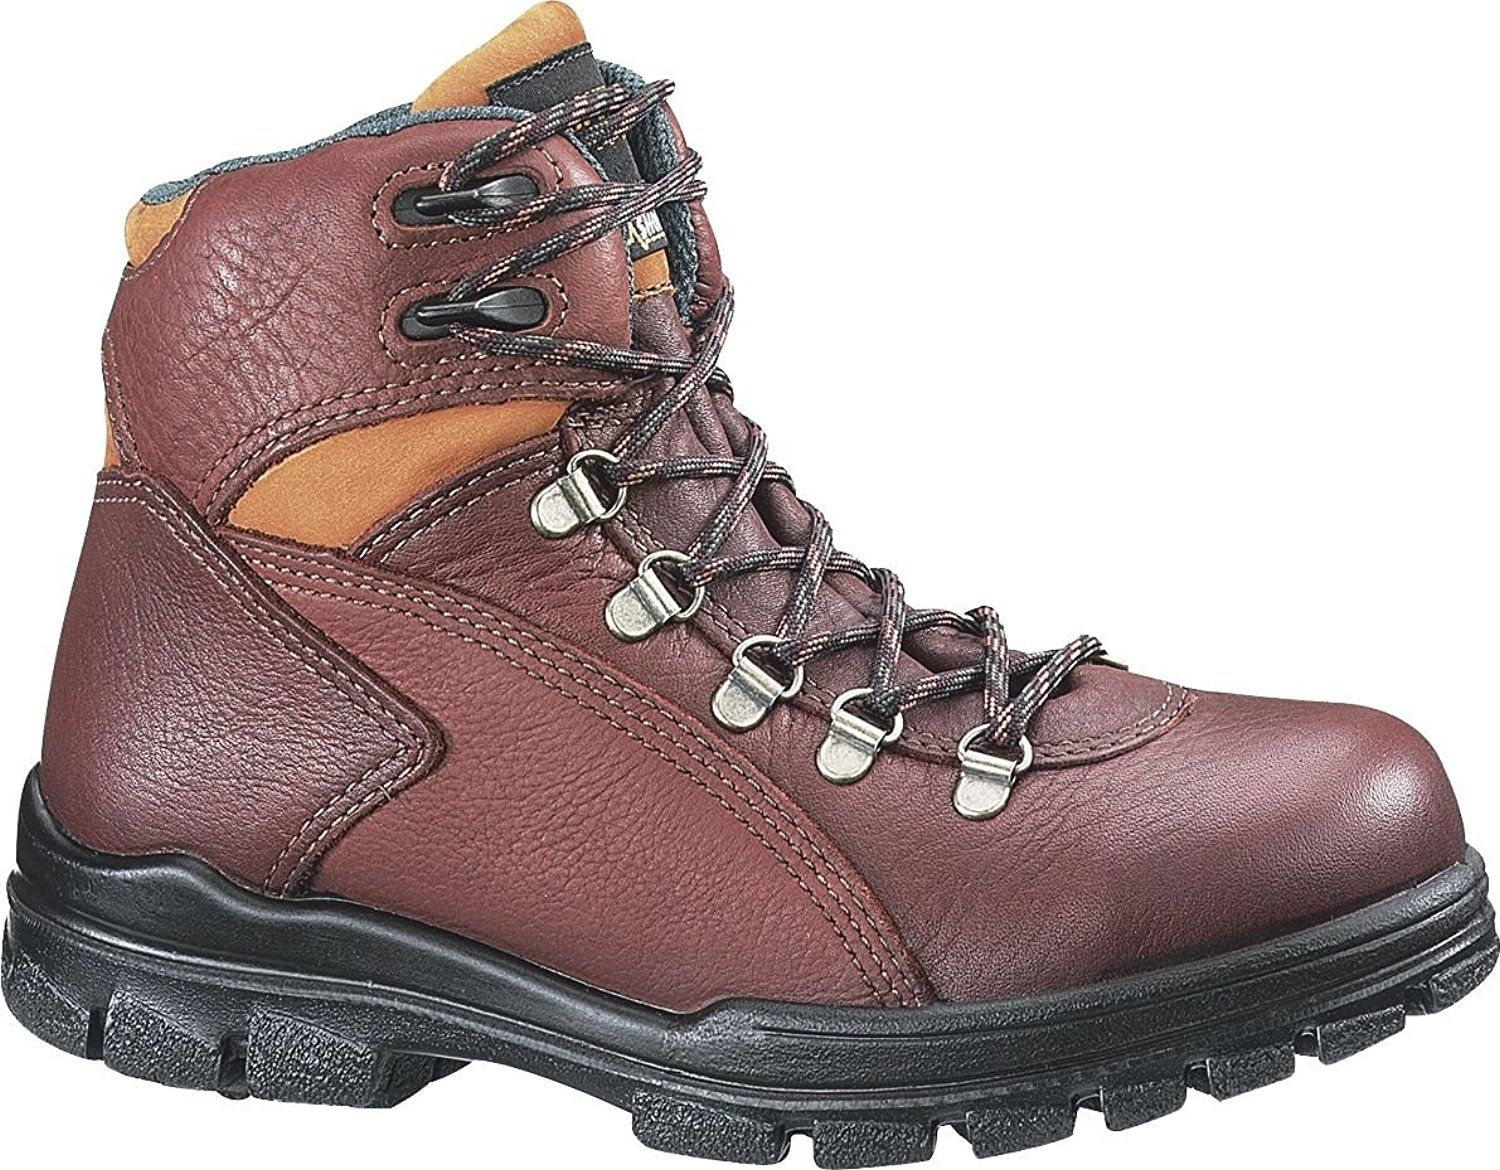 Women's Wolverine DuraShocks 6' Waterproof Steel Toe EH Work Boots ...